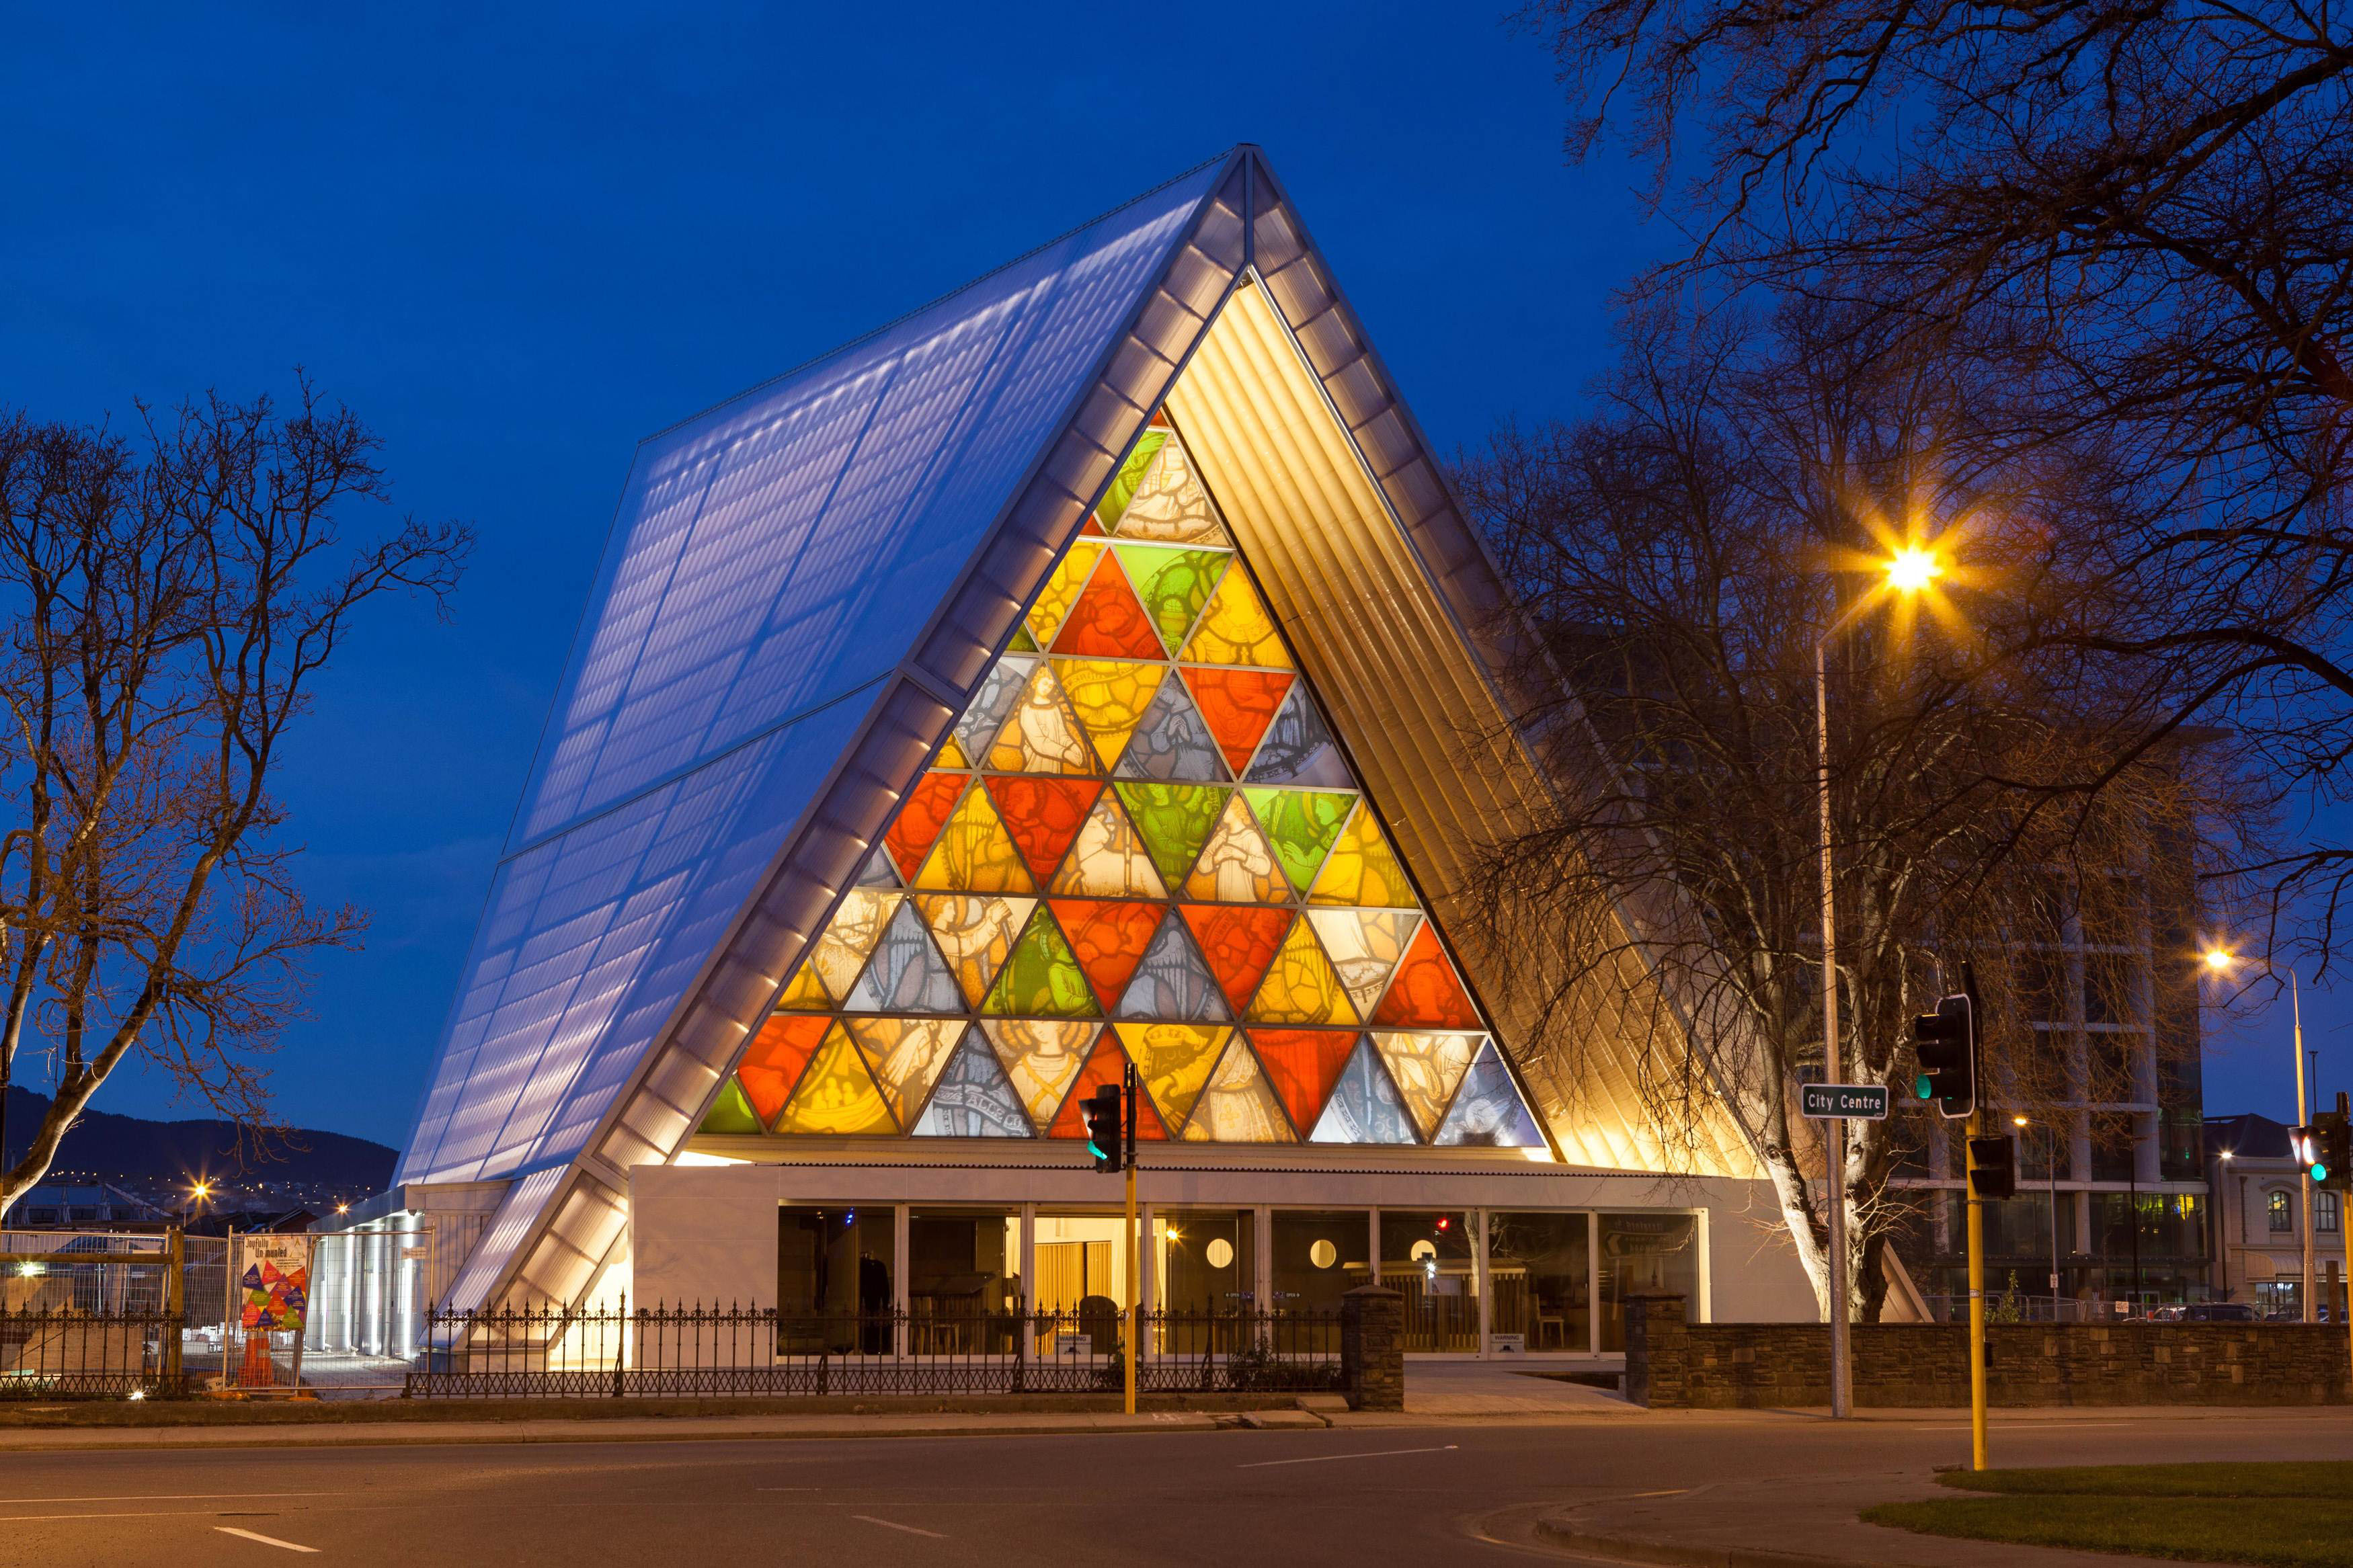 Christchurch News Photo: Cathedral Made Of Cardboard Opens In Earthquake-hit